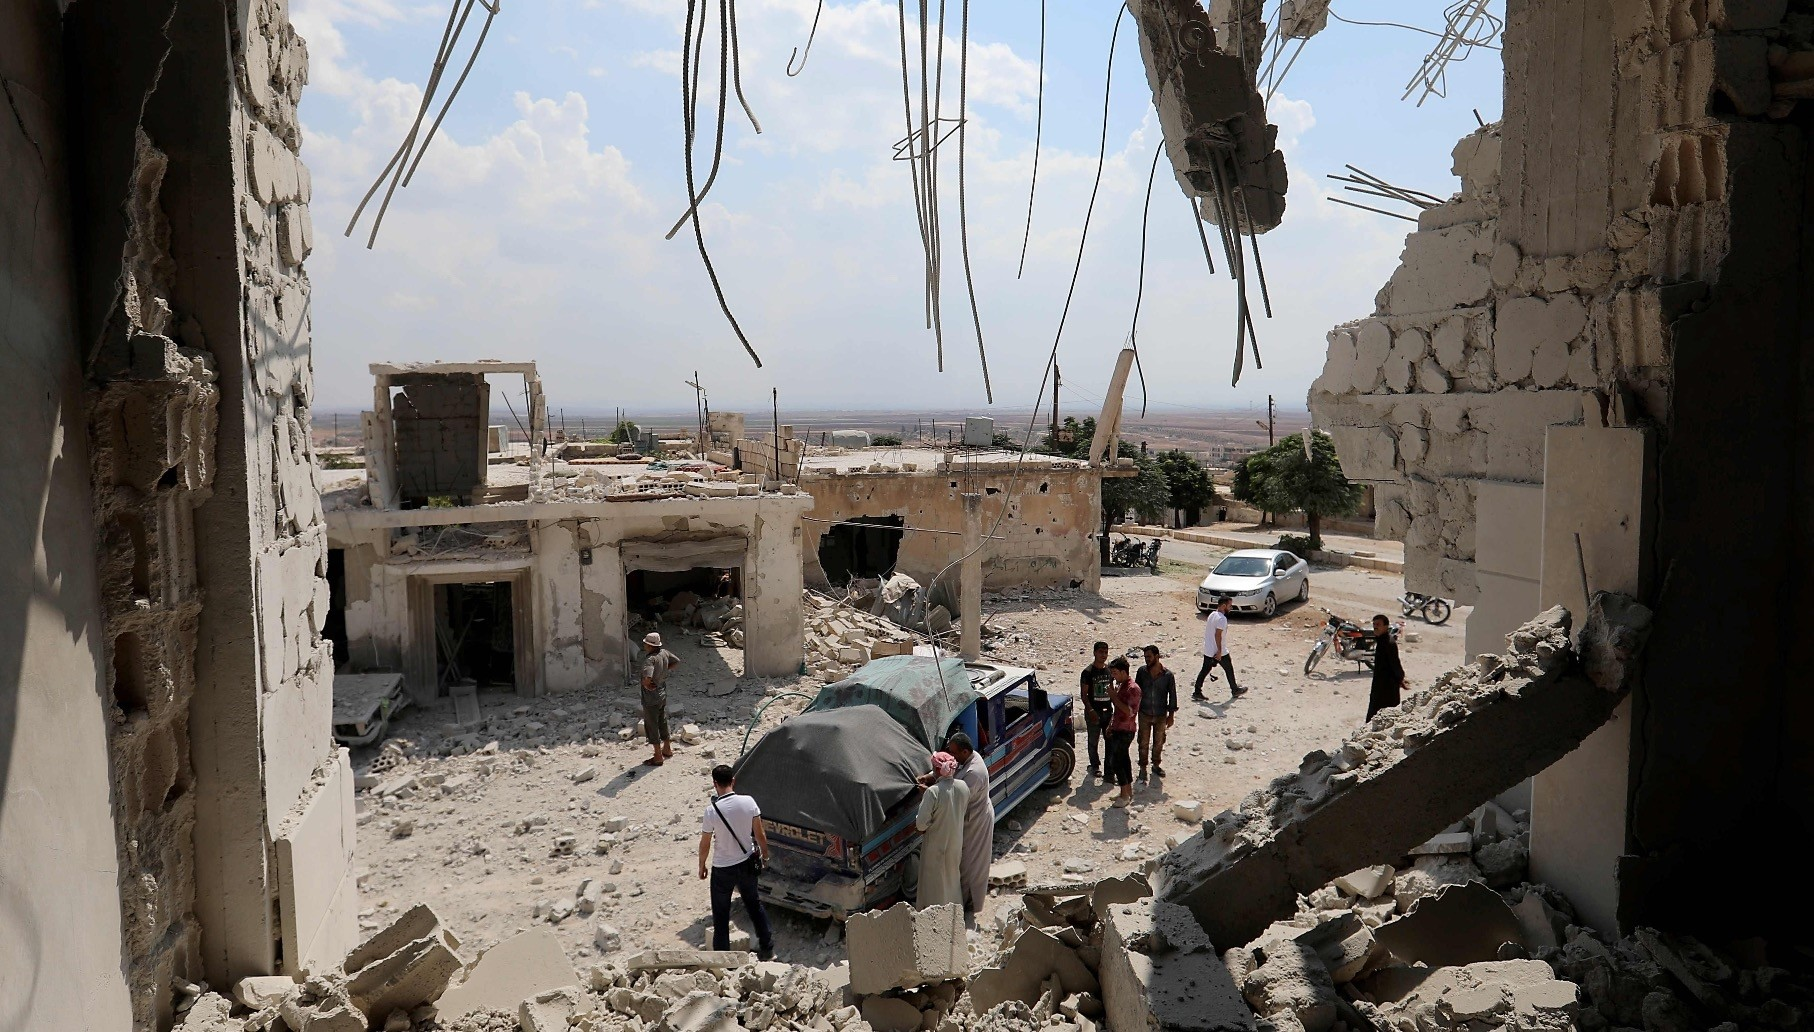 Widespread destruction can be seen after Assad regime bombings in the town of al-Habit, southern Idlib, Sept. 9.